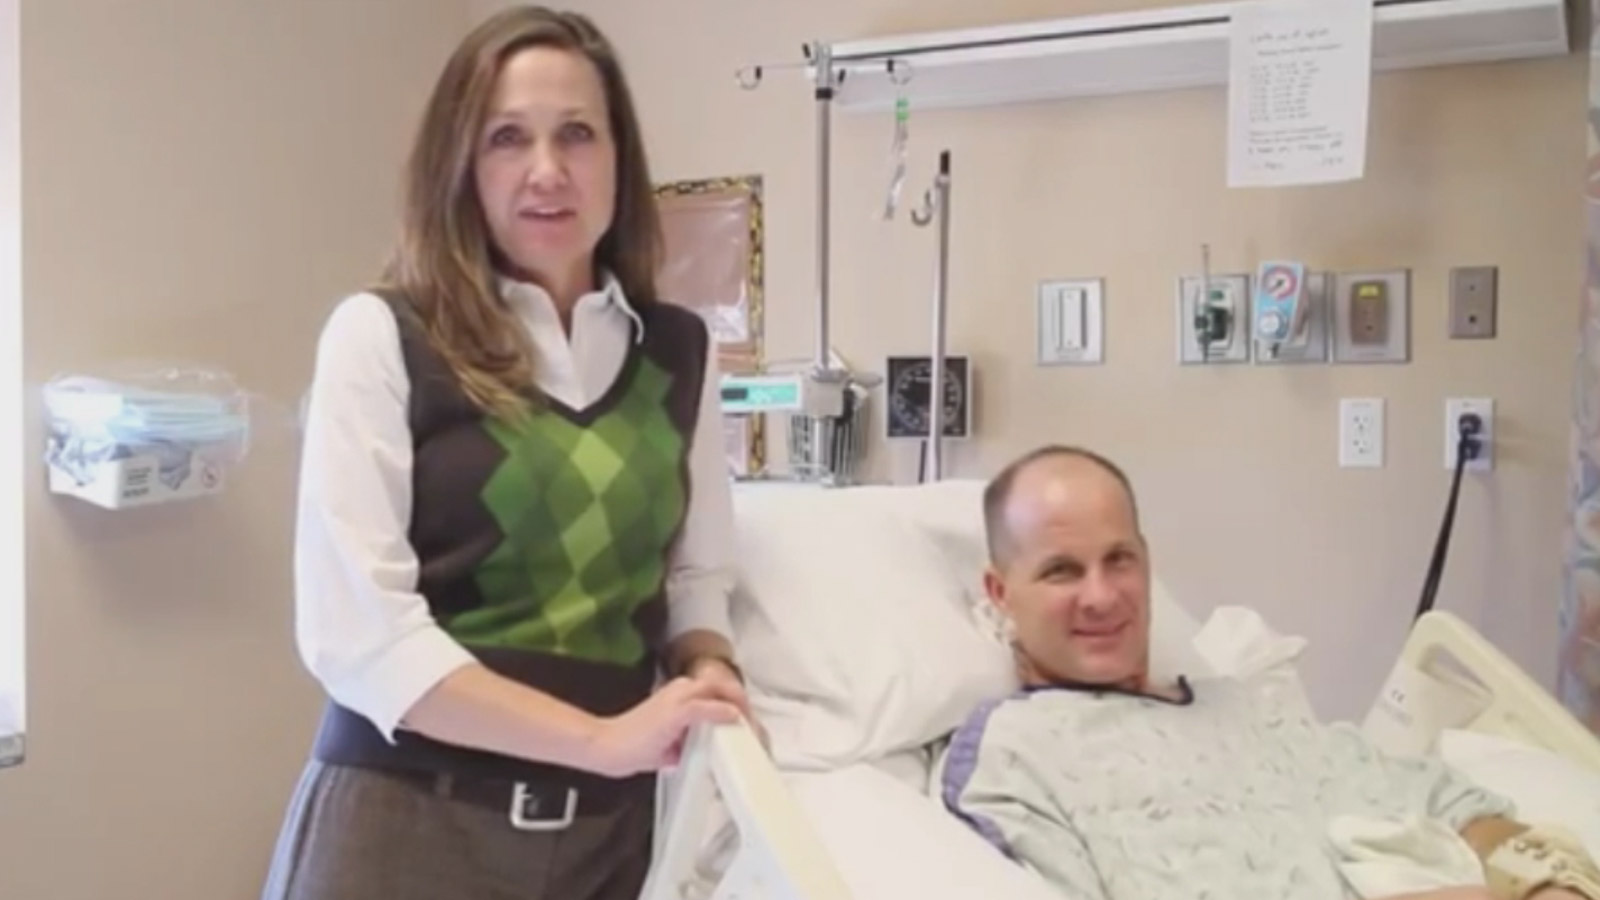 DPD Officer John Adsit seen recovering in the hospital after he was run over during a student protest in December 2014. (credit: YouTube)